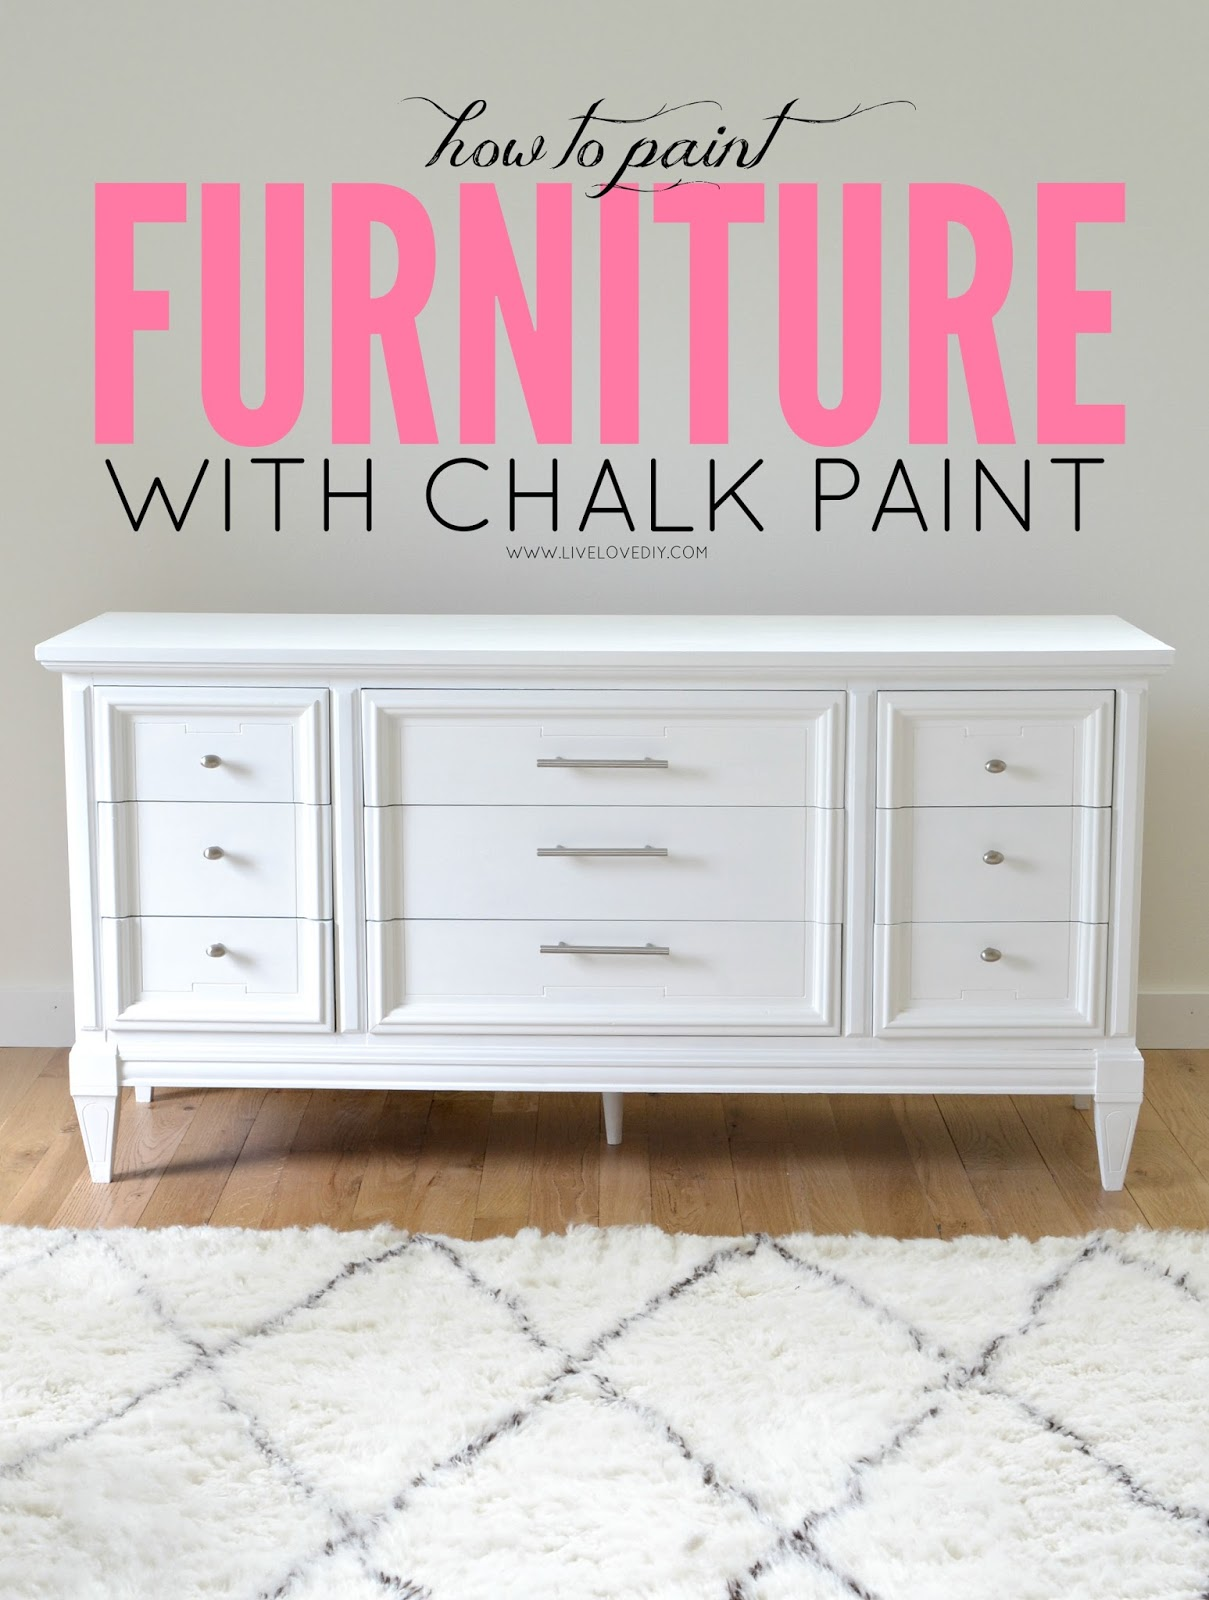 LiveLoveDIY How To Paint Furniture with Chalk Paint and how to